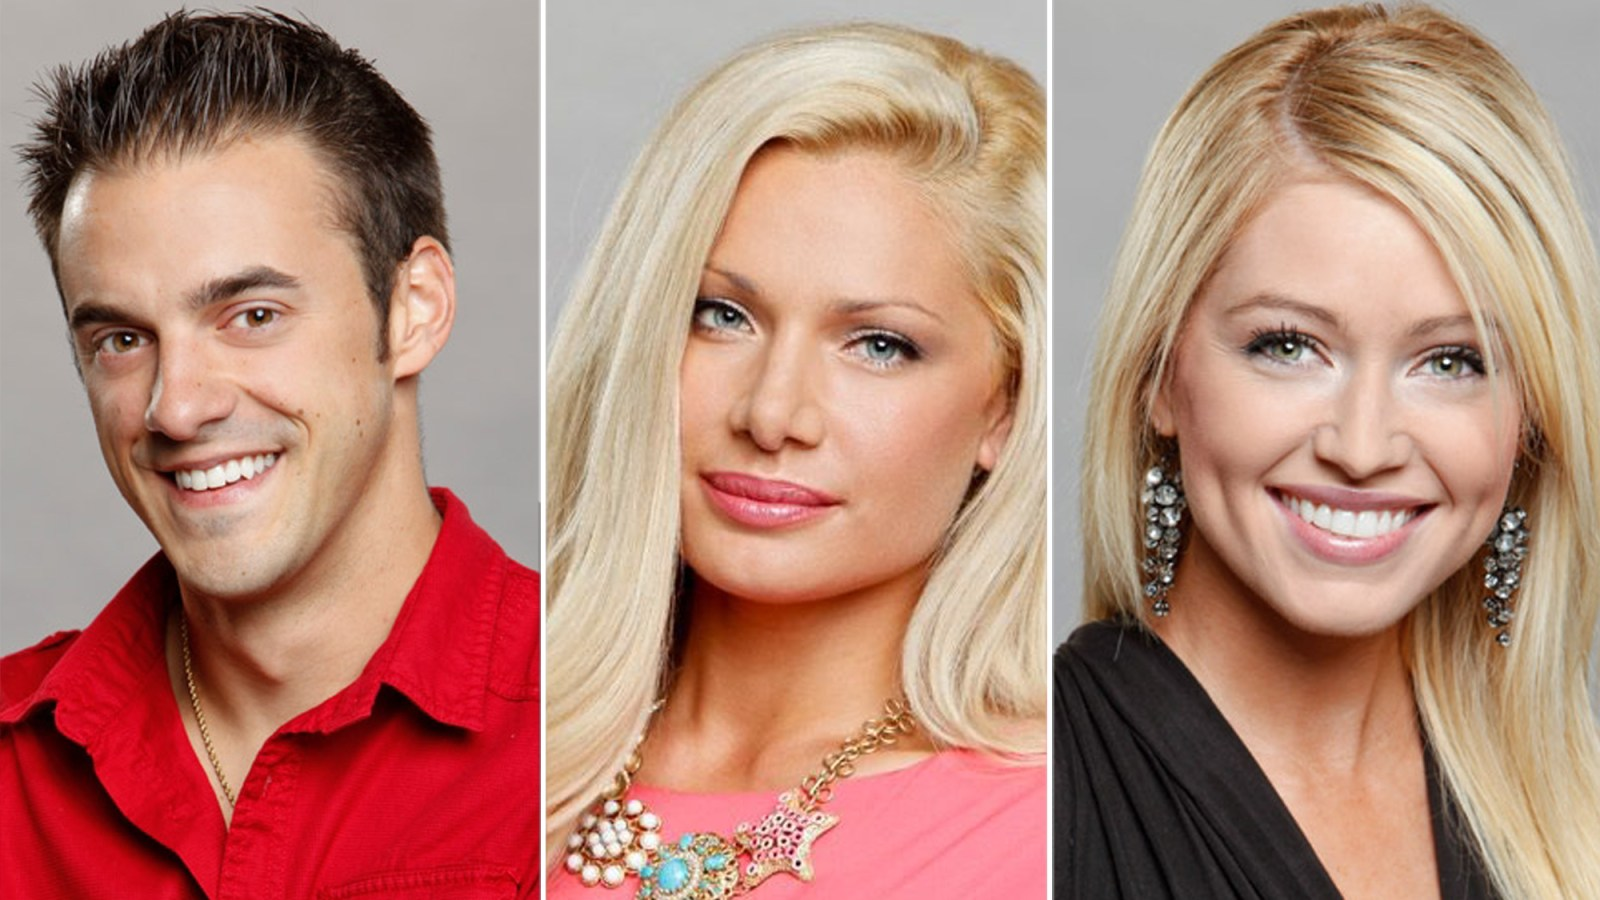 The Amazing Race Season 31 Big Brother Survivor Players Cast